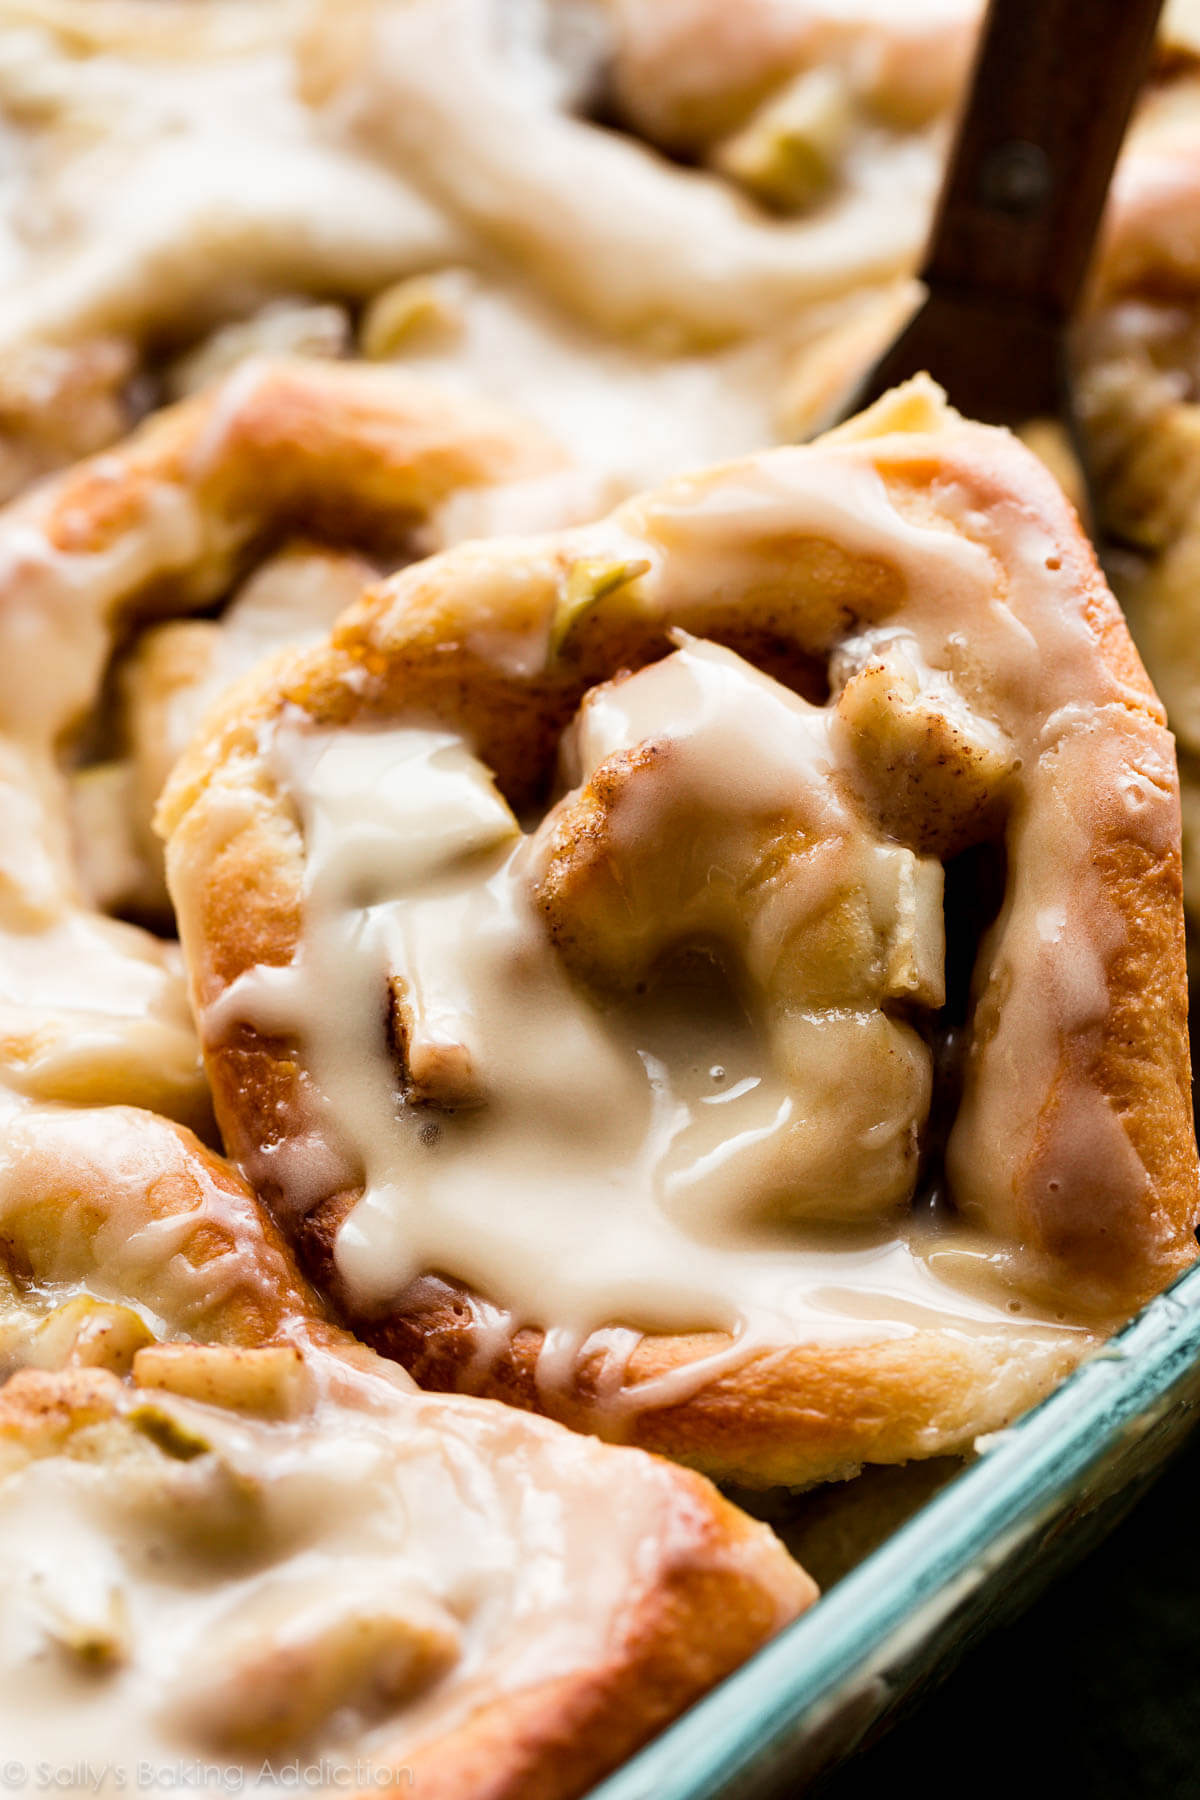 Fresh out of the oven, warm and gooey apple cinnamon rolls with delicious caramel icing on top! Recipe on sallysbakingaddiction.com